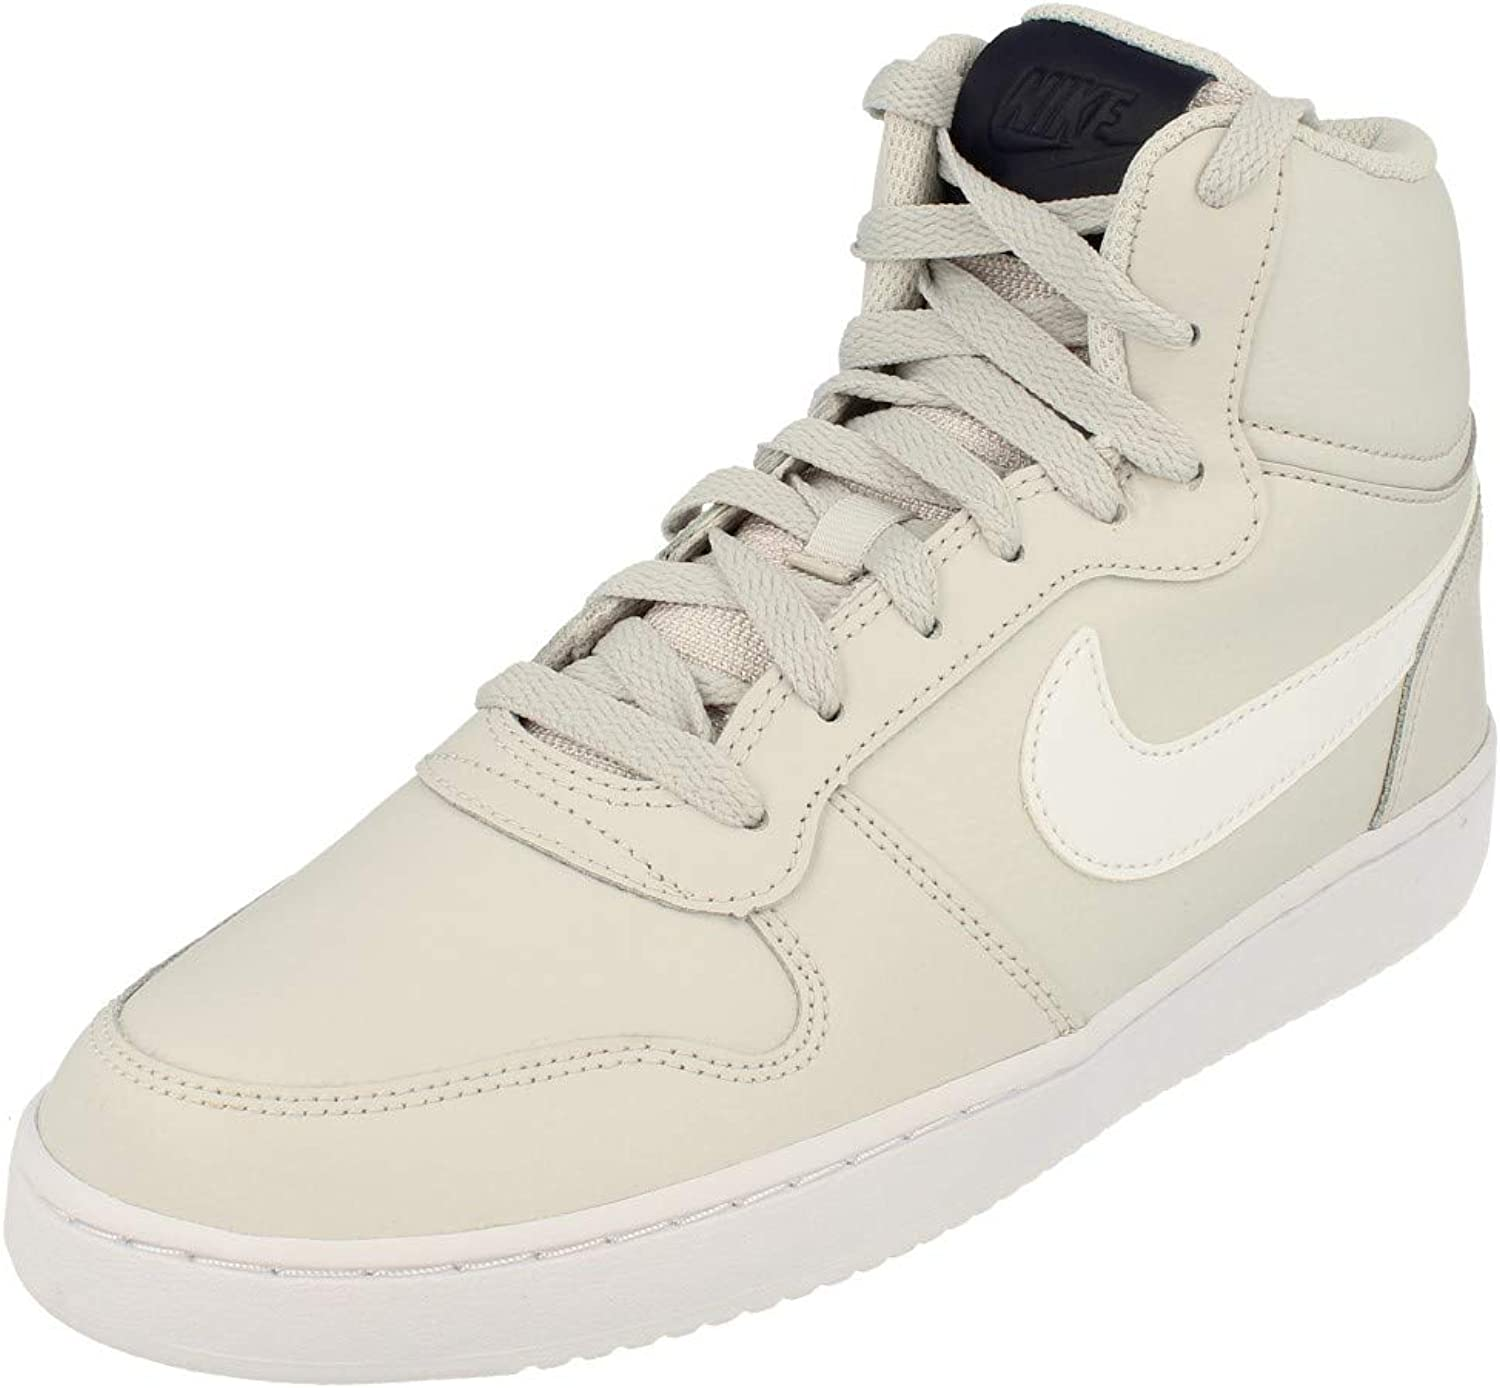 Nike Ebernon Mid Men's shoes